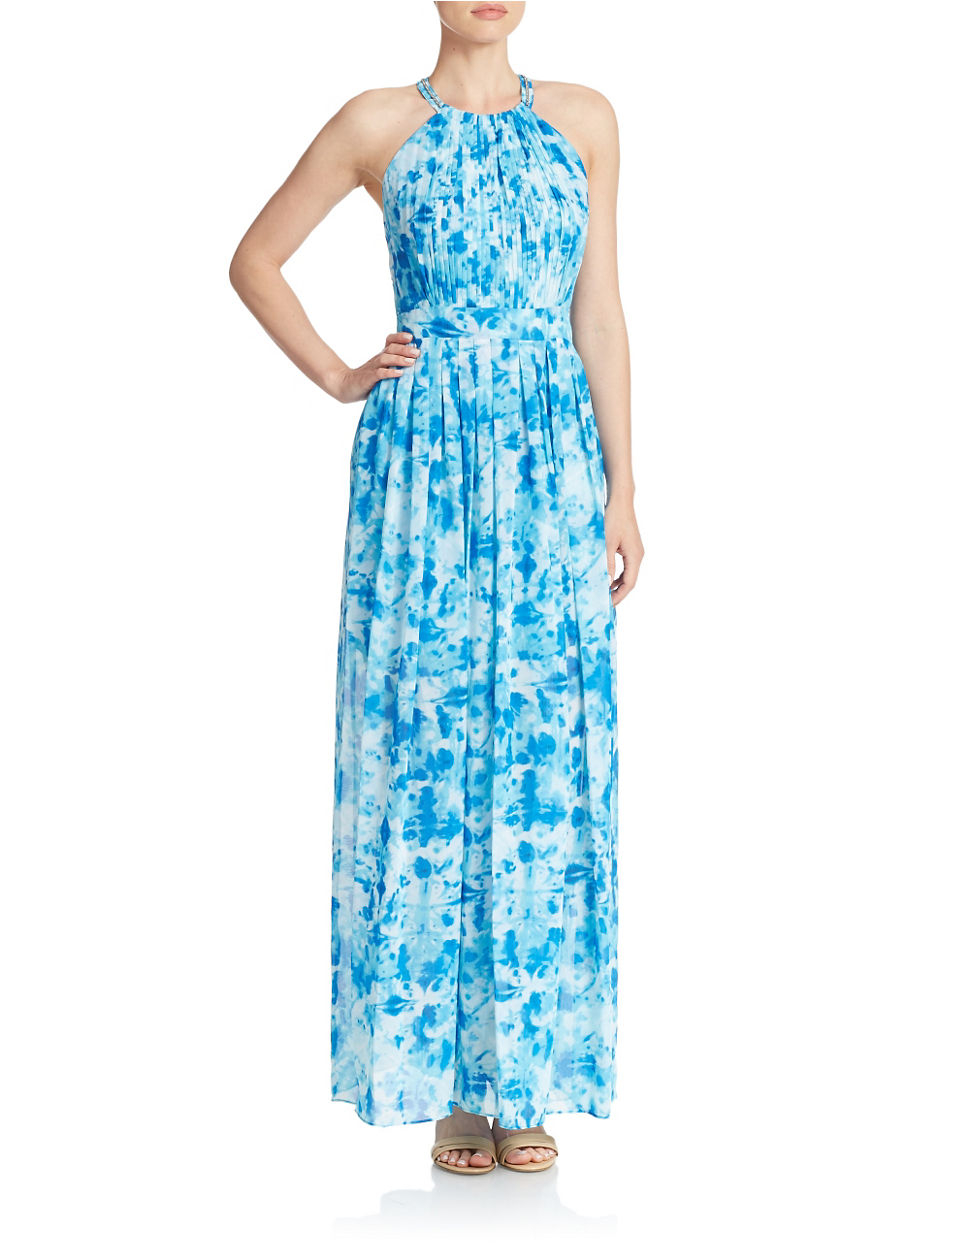 Calvin klein Patterned Maxi Dress in Blue | Lyst